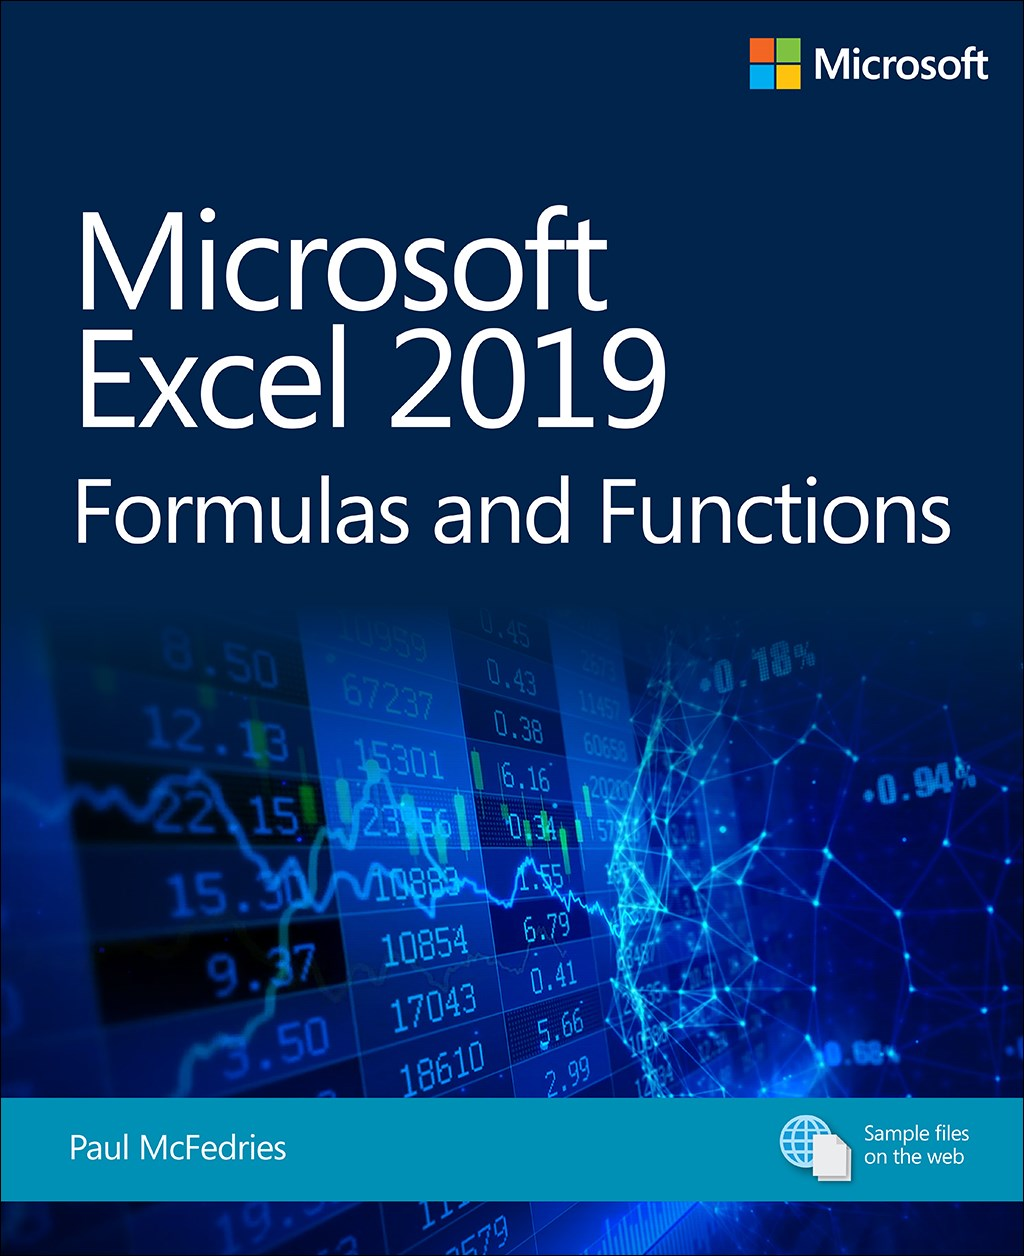 Microsoft Excel 2019 Formulas and Functions